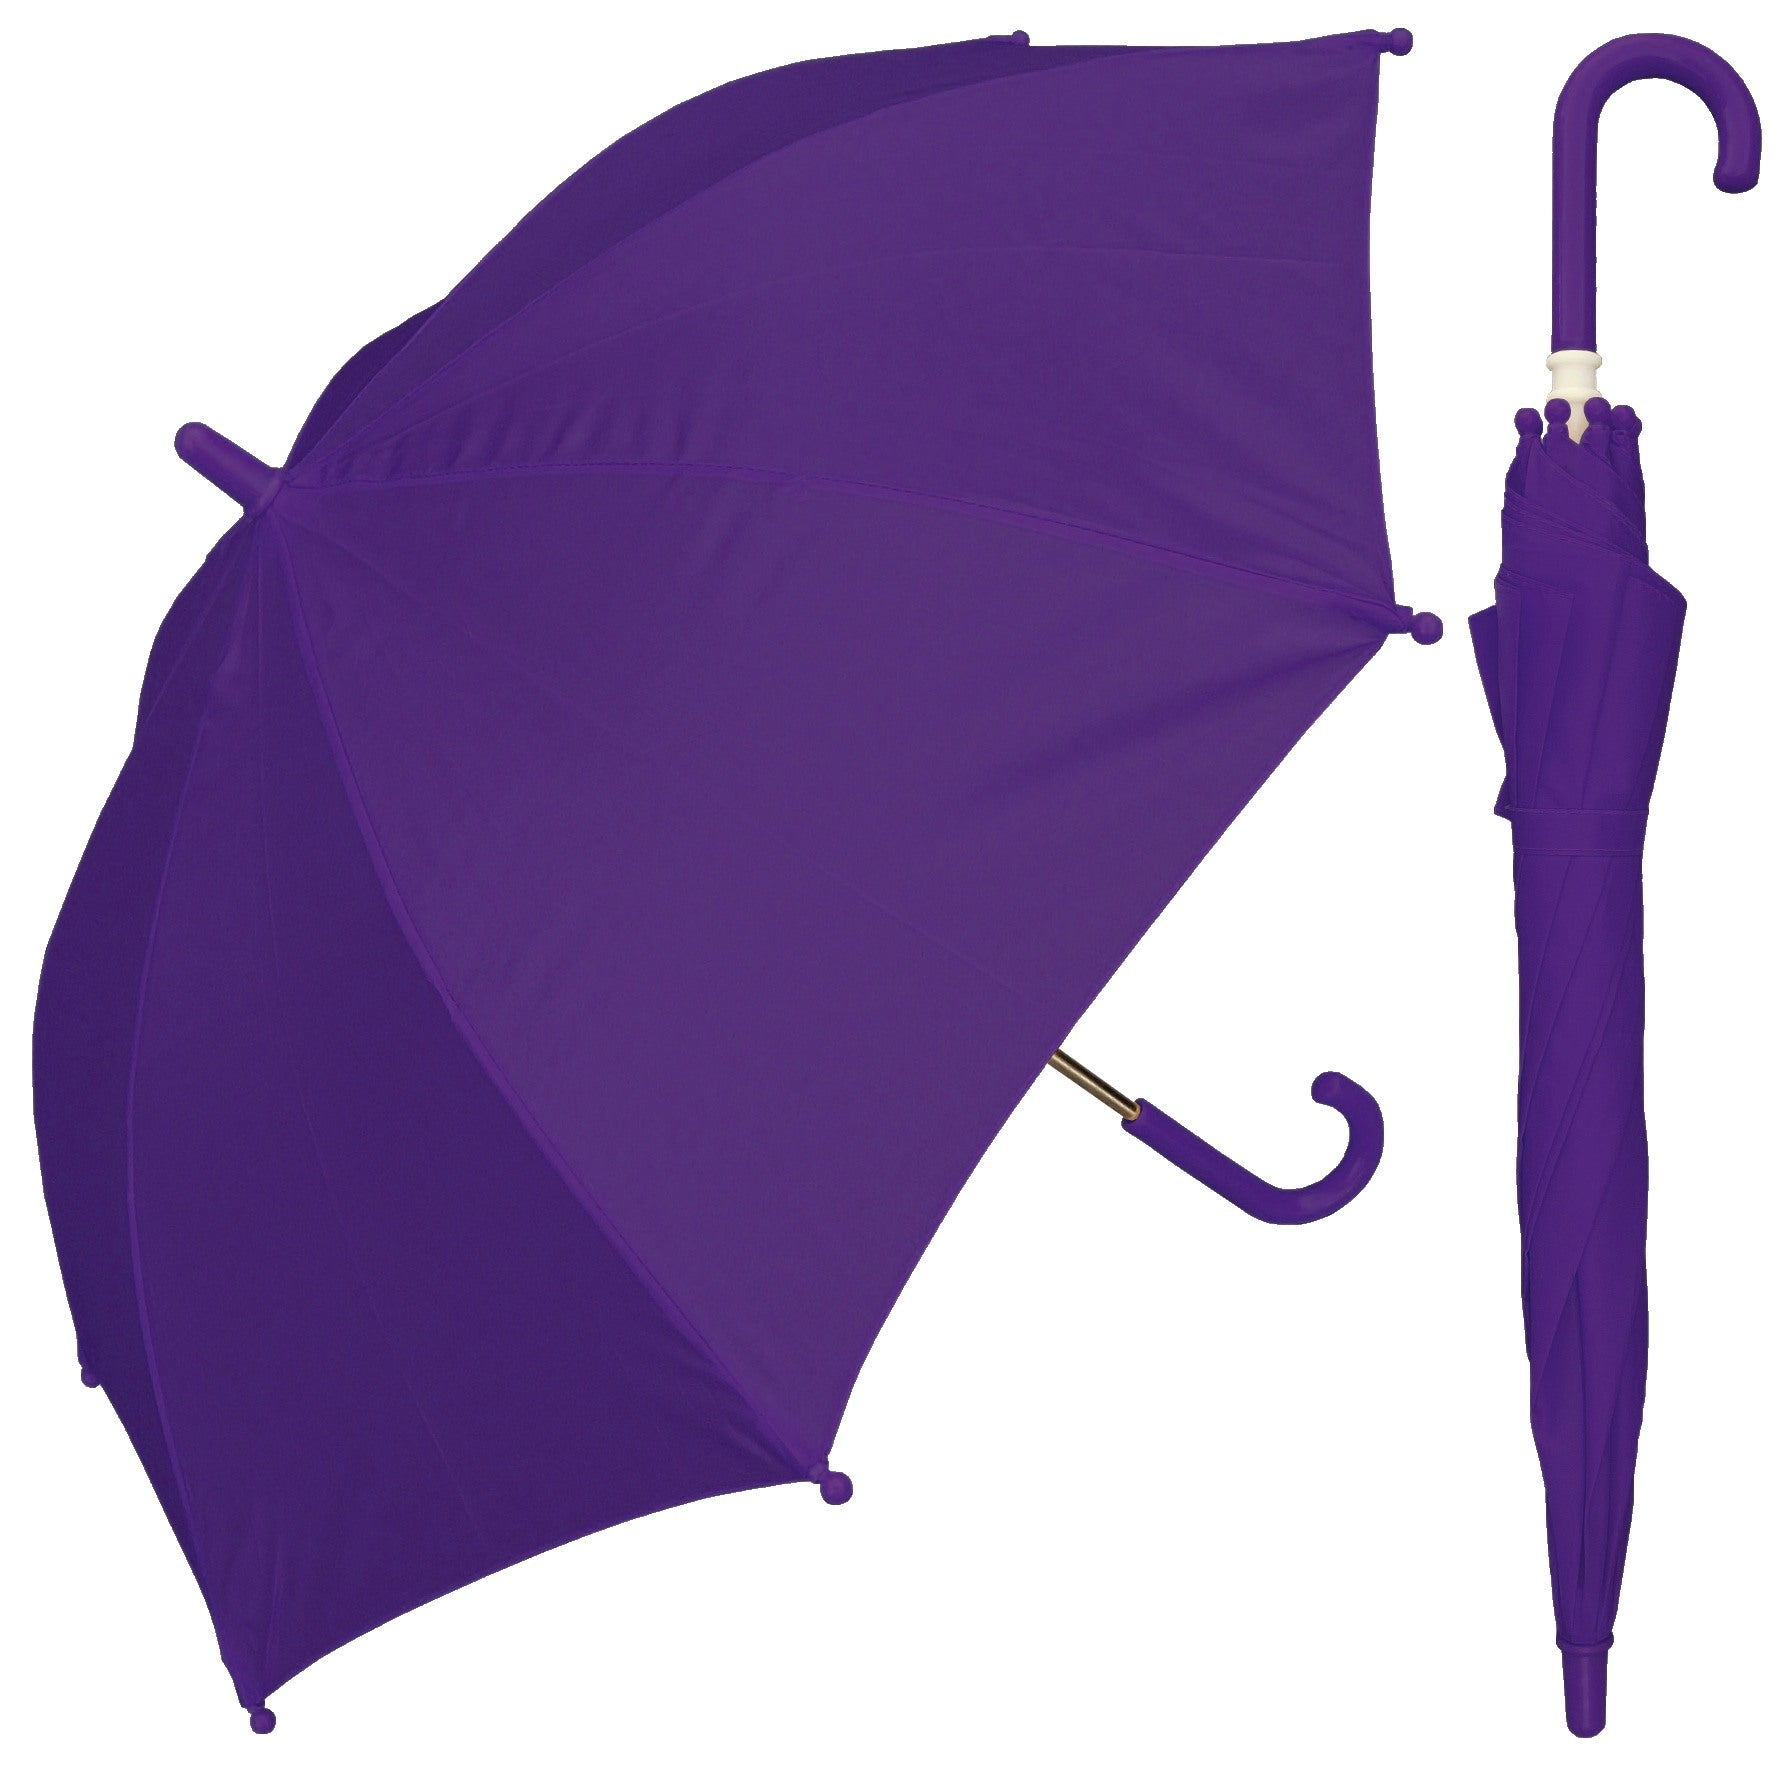 714a856990bf3 Wholesale Kids Umbrellas: Cheap Kids Umbrellas in USA - Umbrella ...